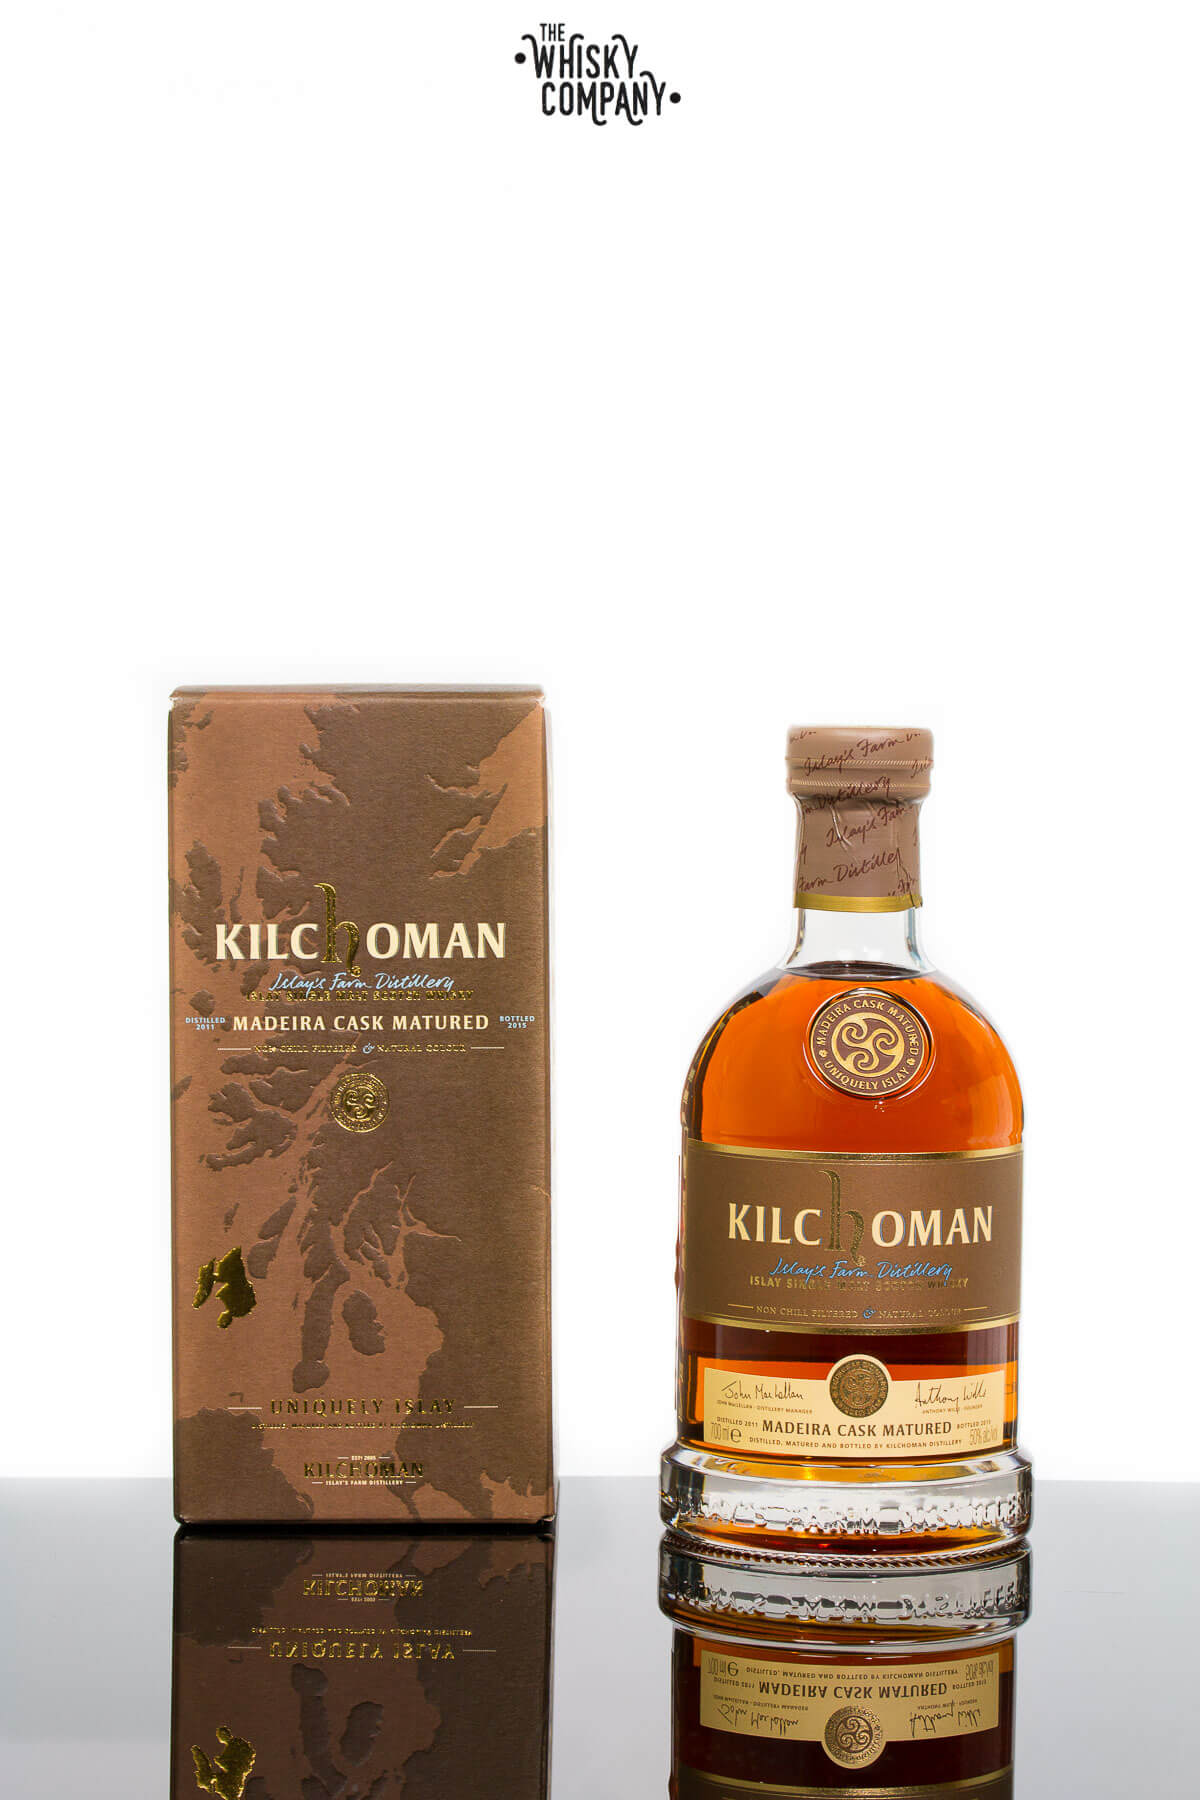 Kilchoman 2011 Madeira Cask Matured Single Cask Islay Single Malt Scotch Whisky